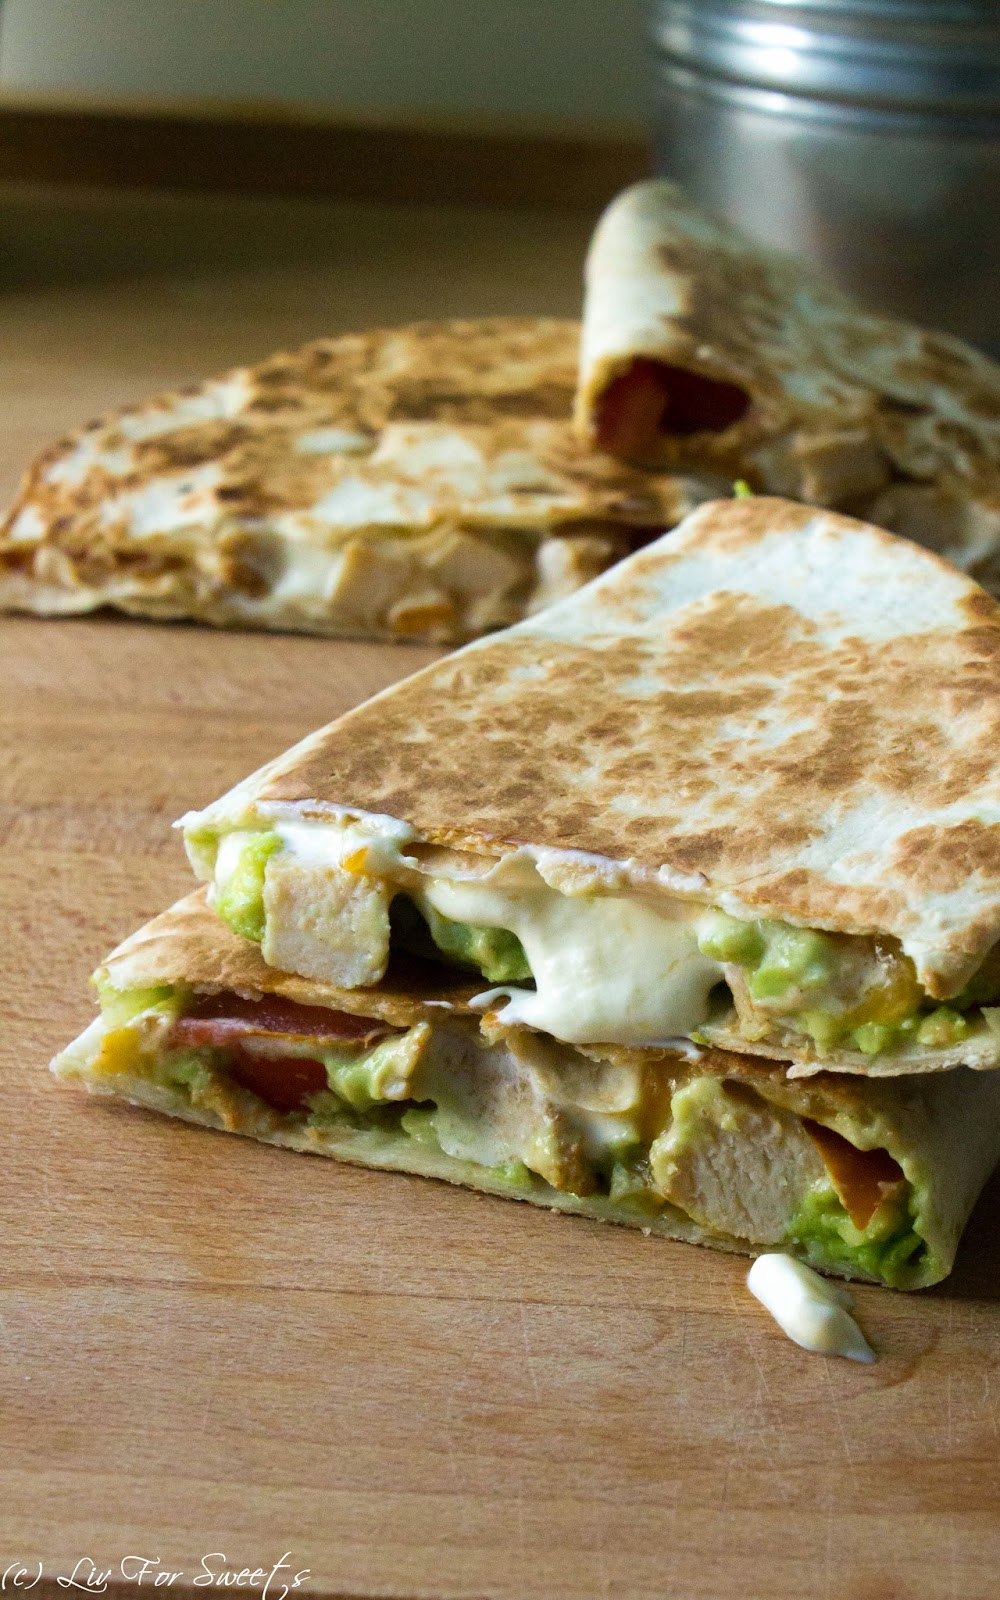 Chicken-BBQ-Quesadilla, Chicken-Avocado-Quesadilla, BBQ, Quesadilla, Tex-Mex, Tortilla